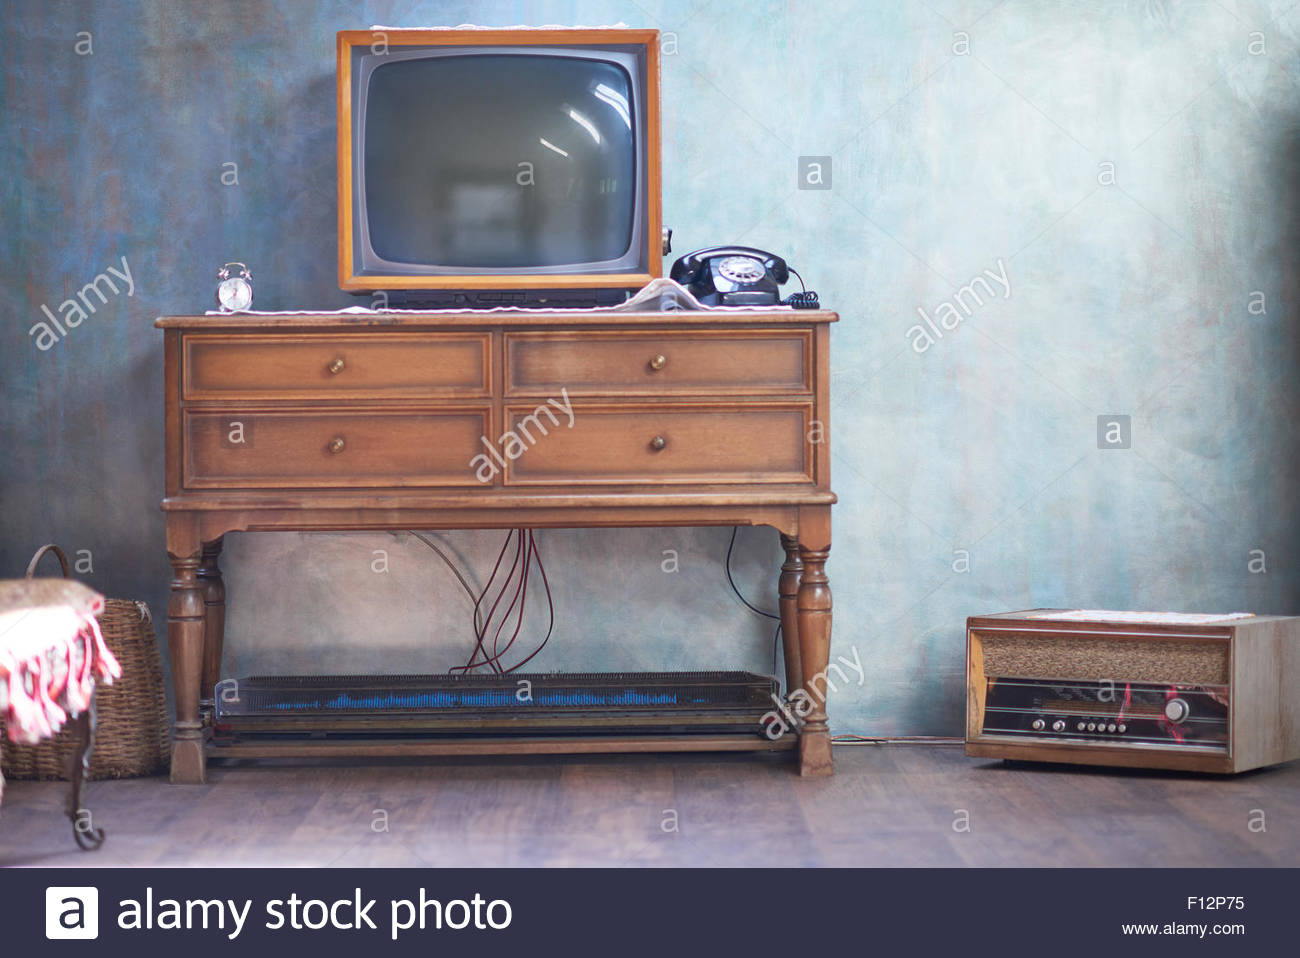 tv television show on set stockfotos tv television show on set bilder alamy. Black Bedroom Furniture Sets. Home Design Ideas